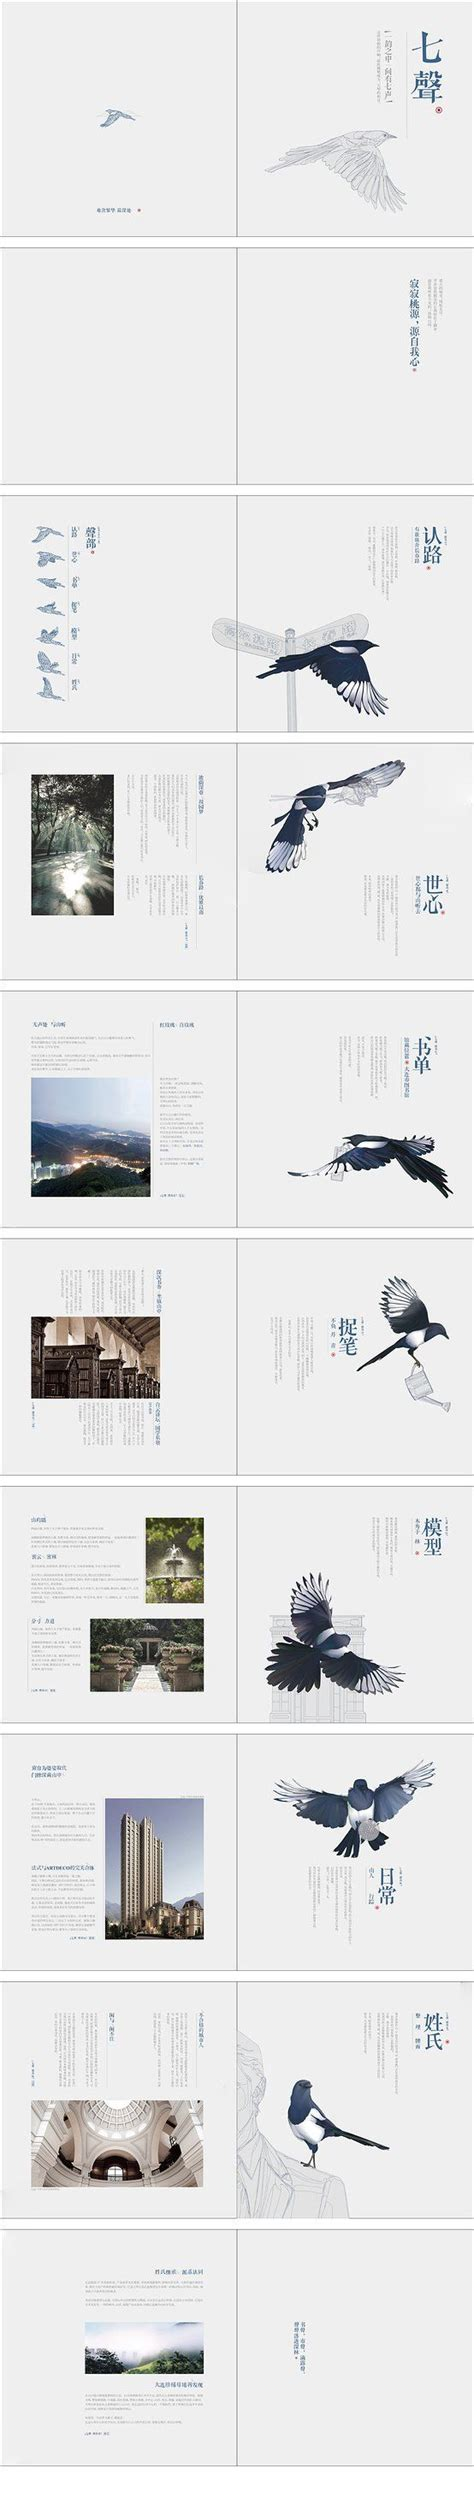 chinese graphic design layout best 25 chinese design ideas on pinterest